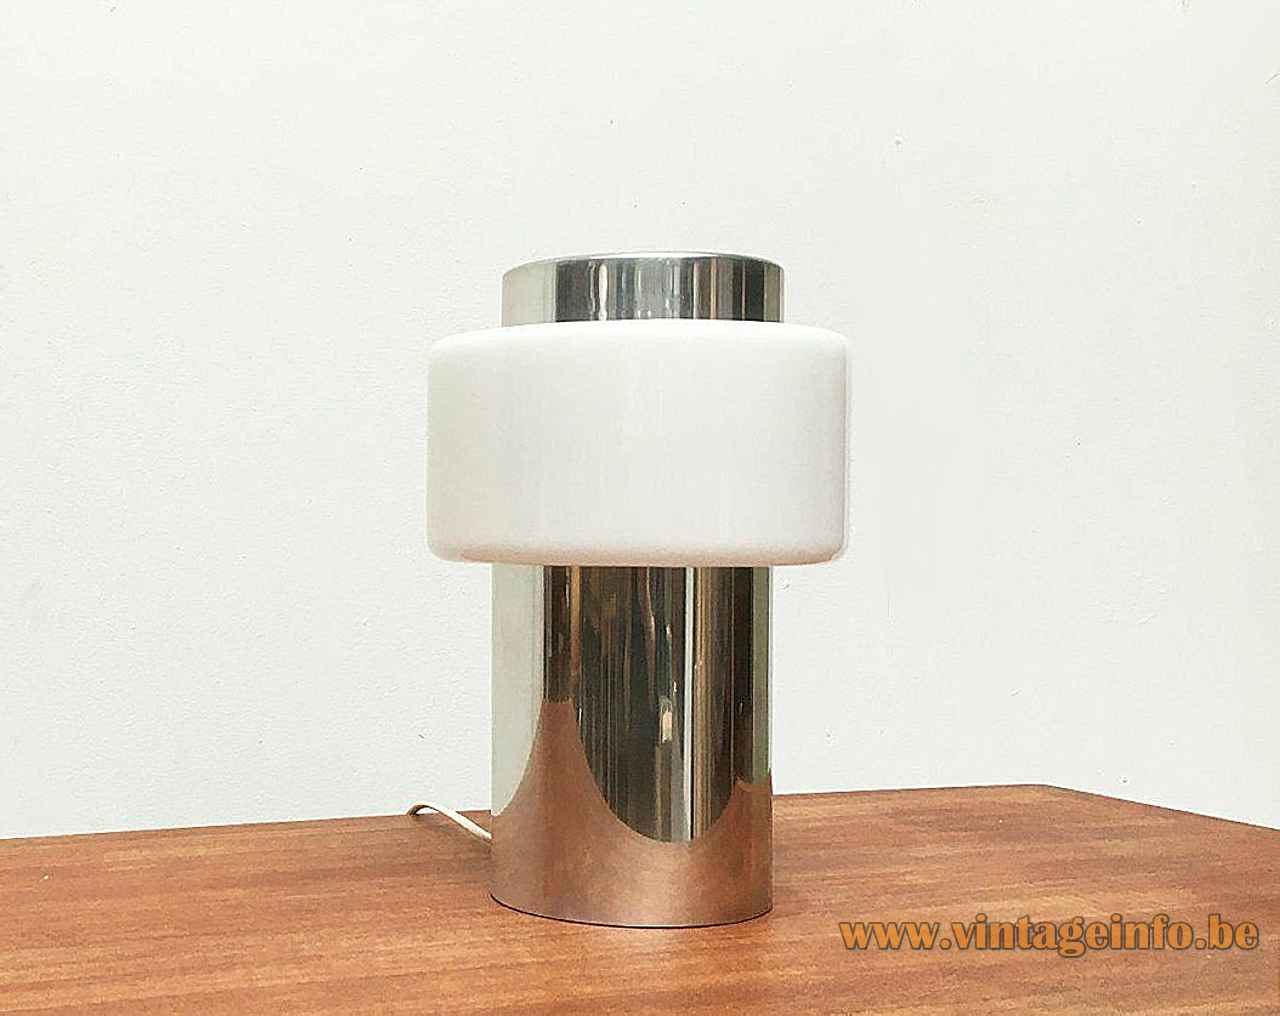 Temde chrome tube table lamp metal cylinder base opal glass ring lampshade 1970s Switzerland E27 socket